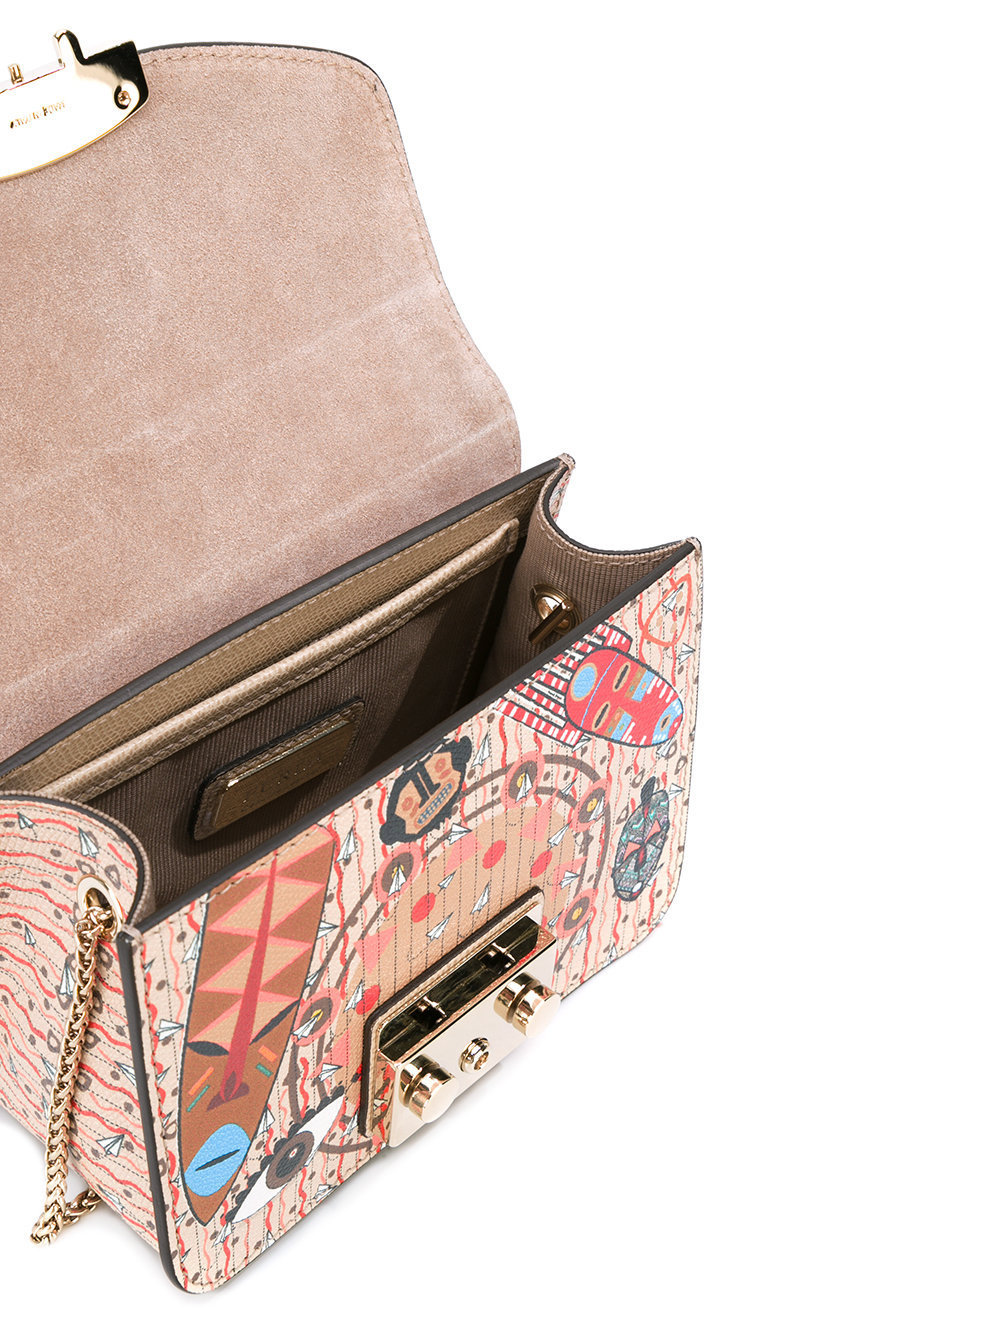 大人気♦FURLA  ethnic print crossbody bag♦